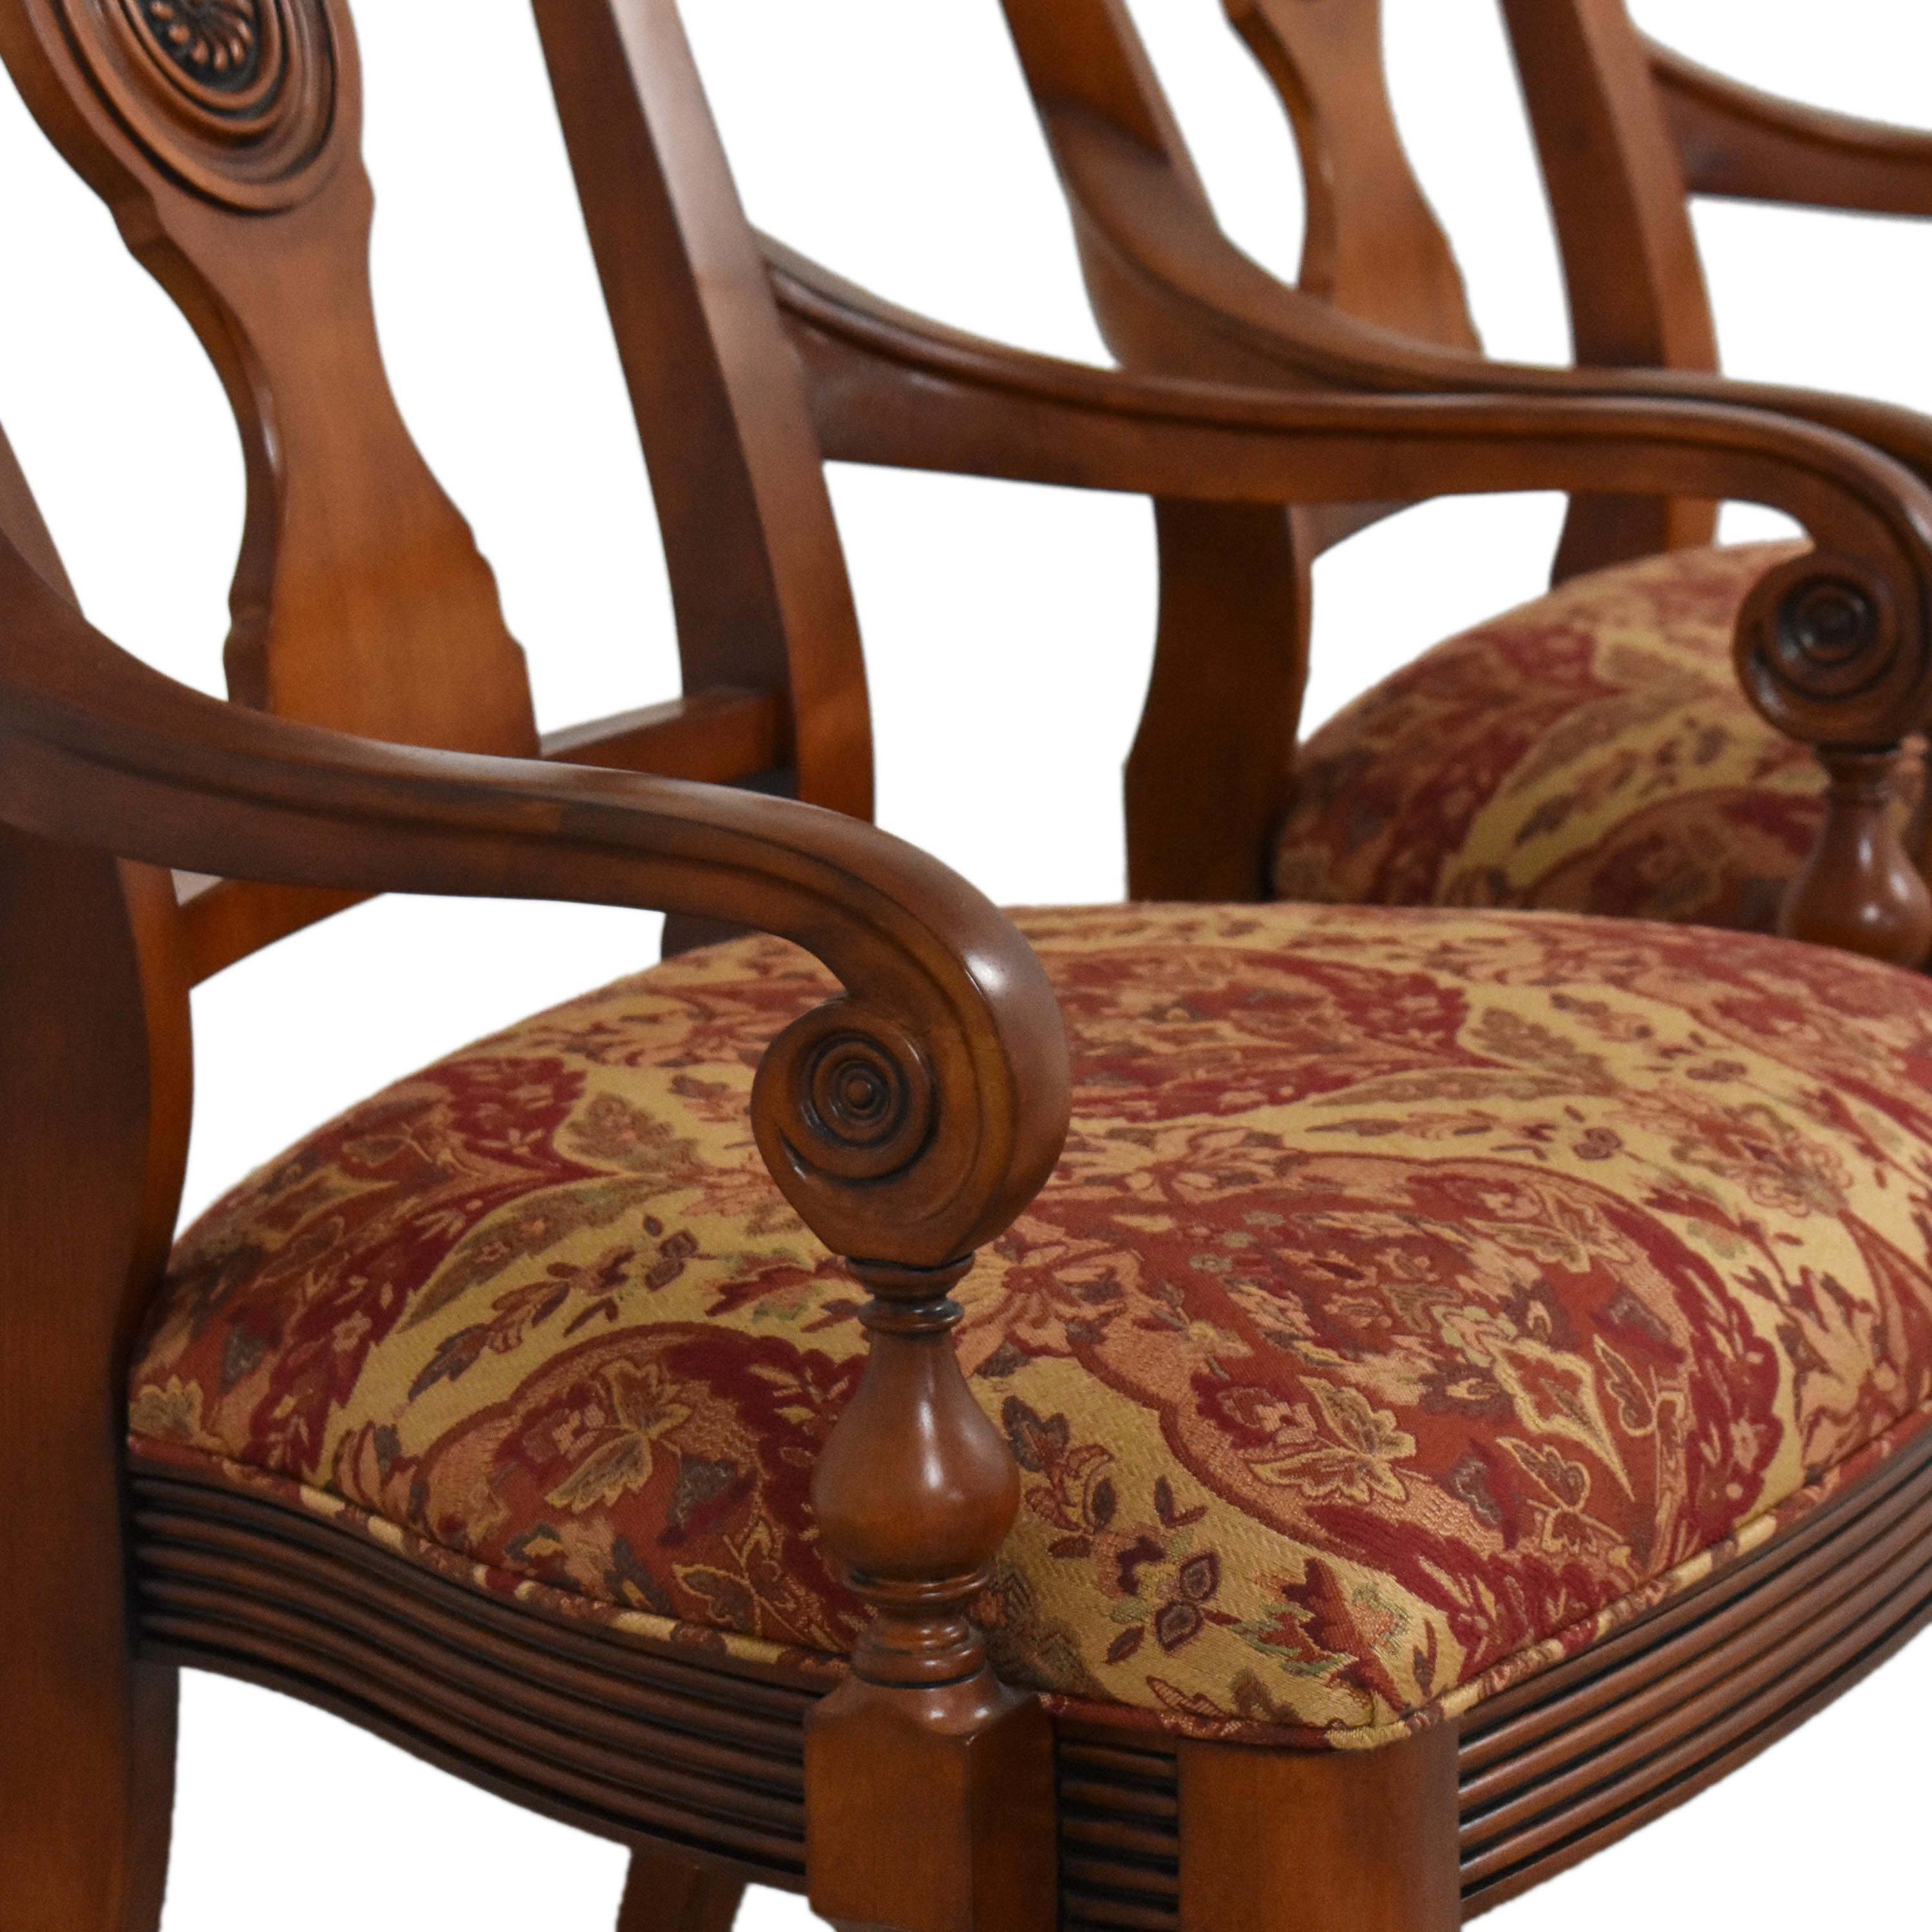 Ethan Allen Ethan Allen British Classics Dining Arm Chairs nyc